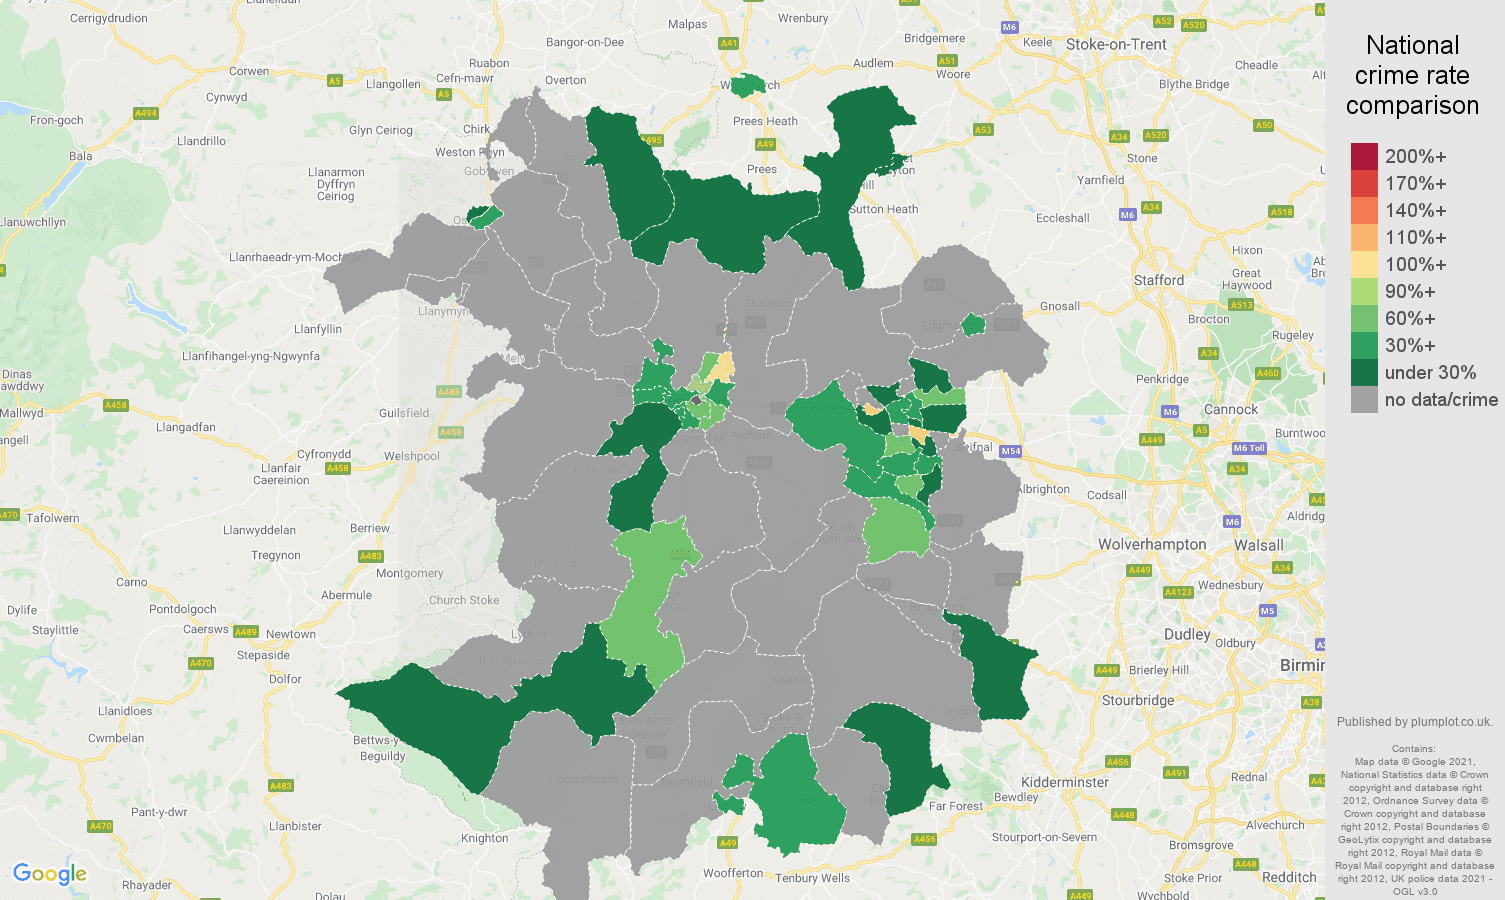 Shropshire bicycle theft crime rate comparison map